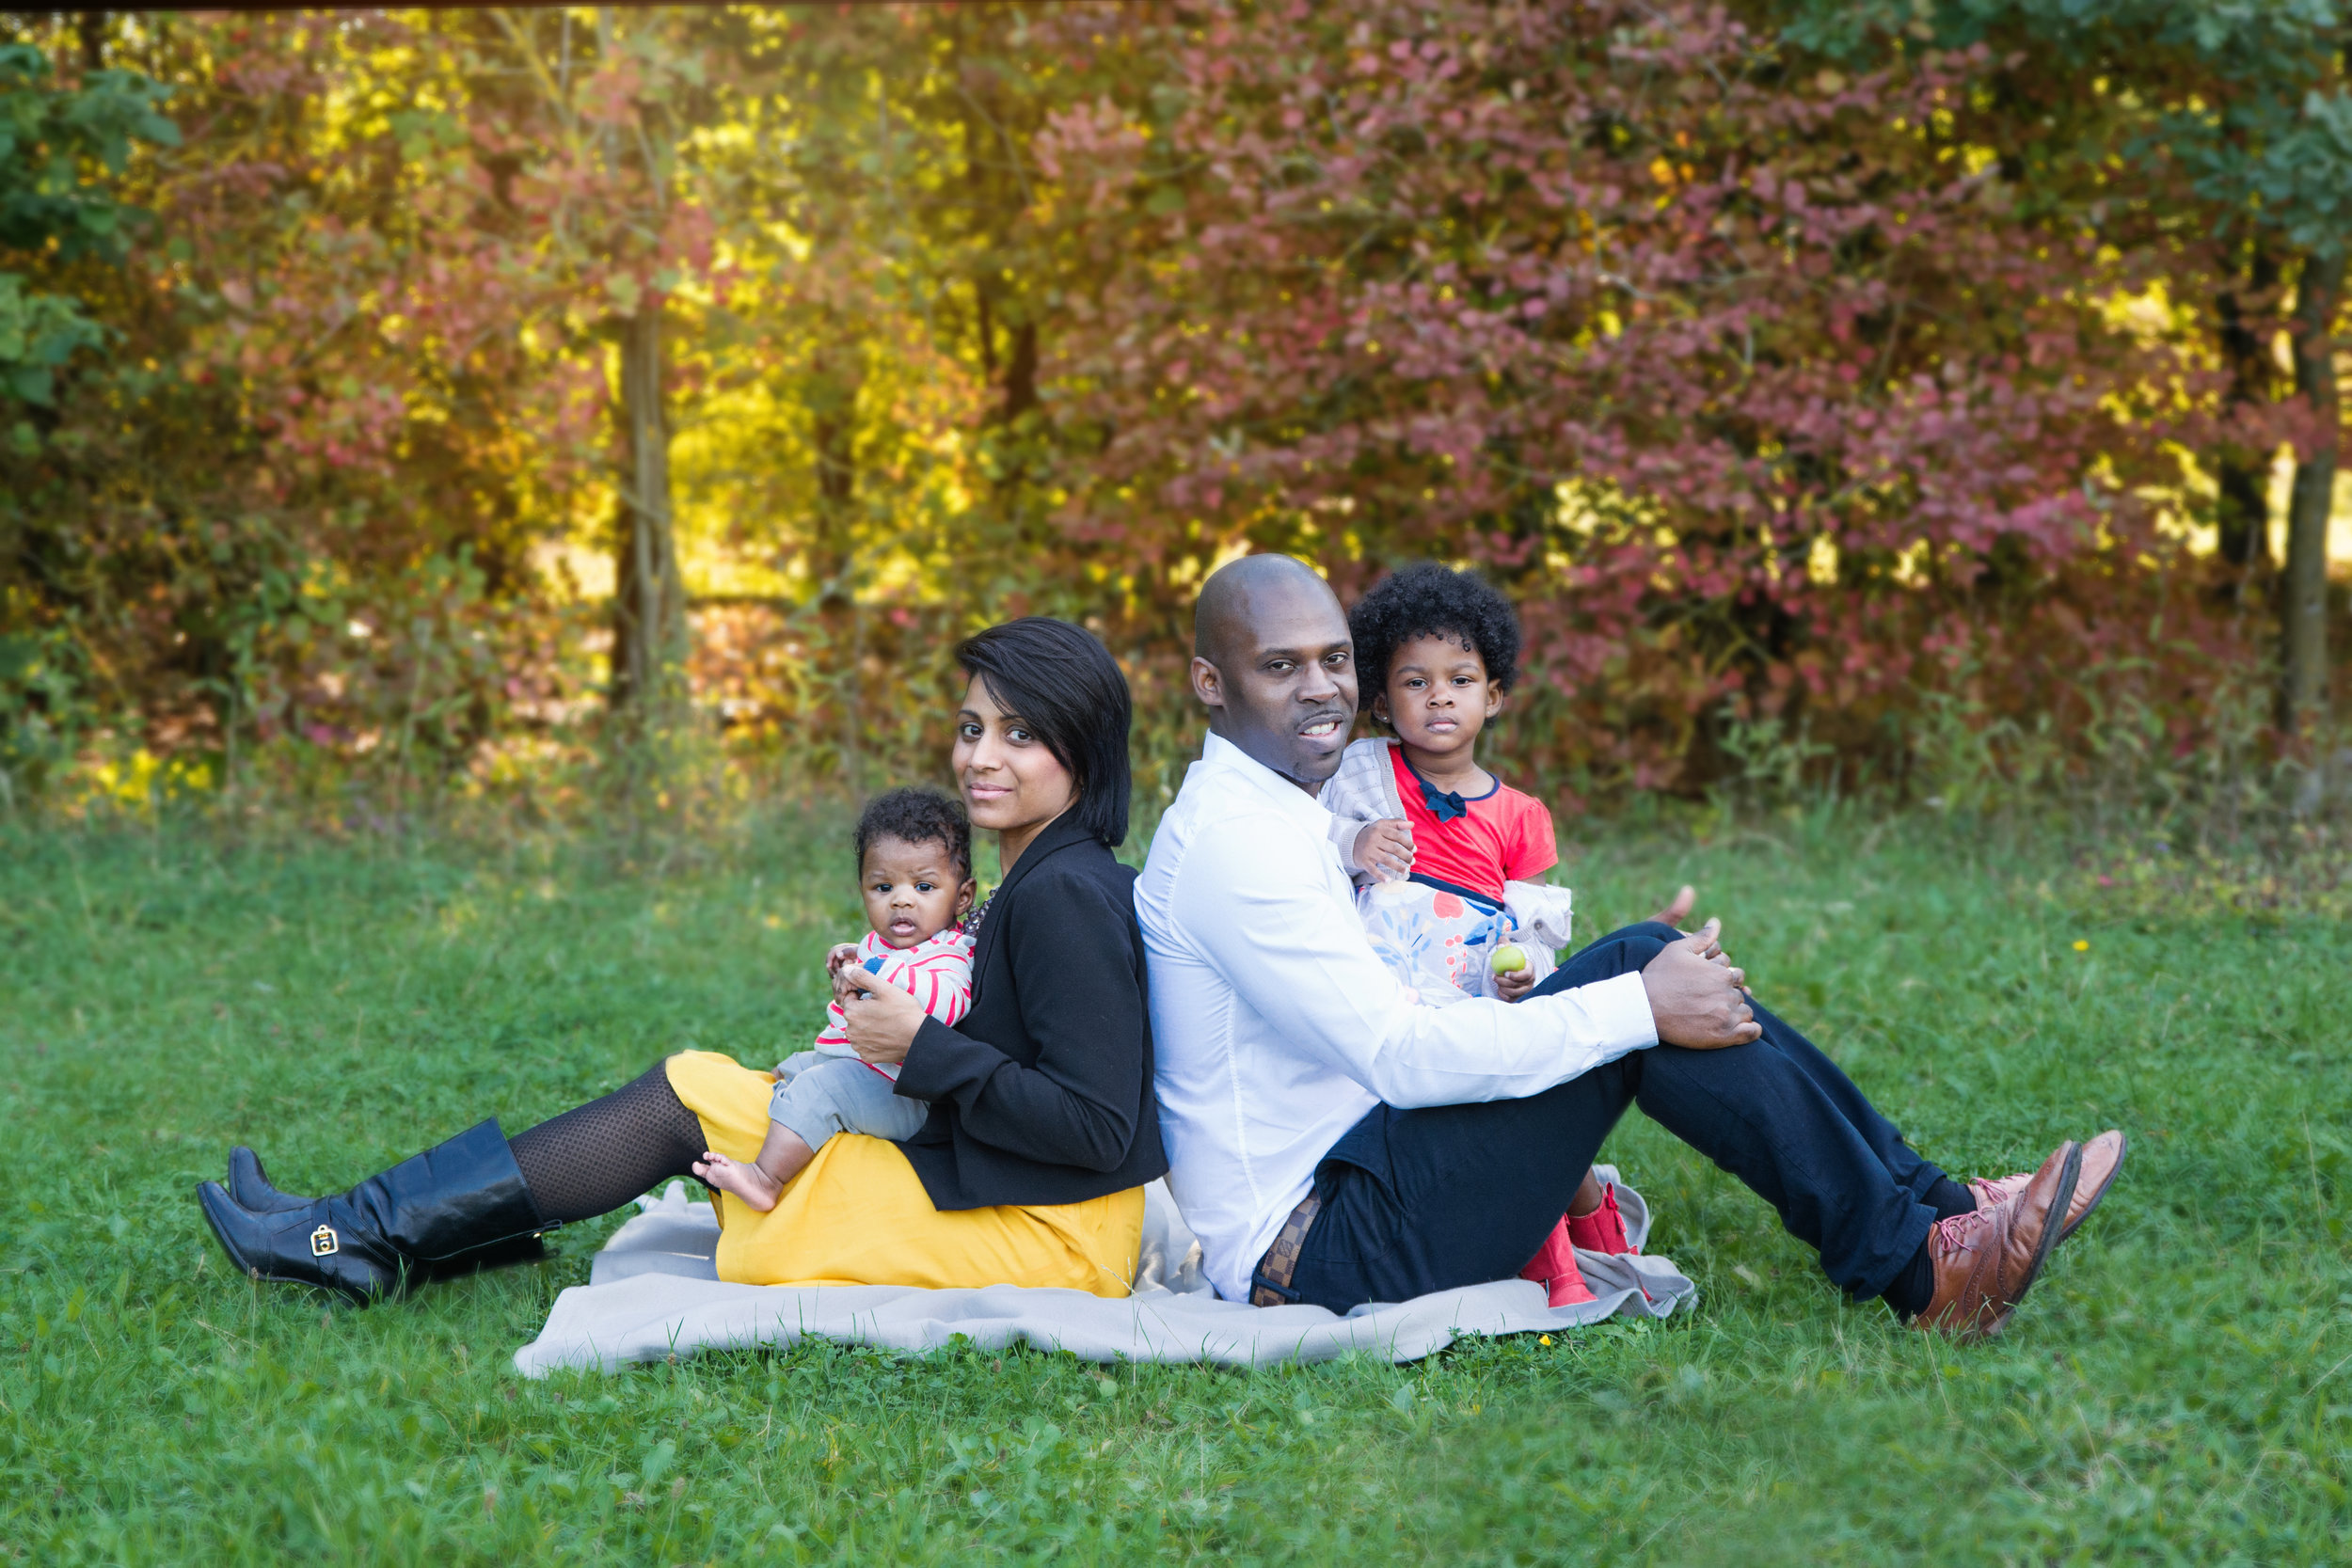 FEATURED MULTIRACIAL FAMILY: MEET THE BATAMBUZE FAMILY via Swirl Nation Blog